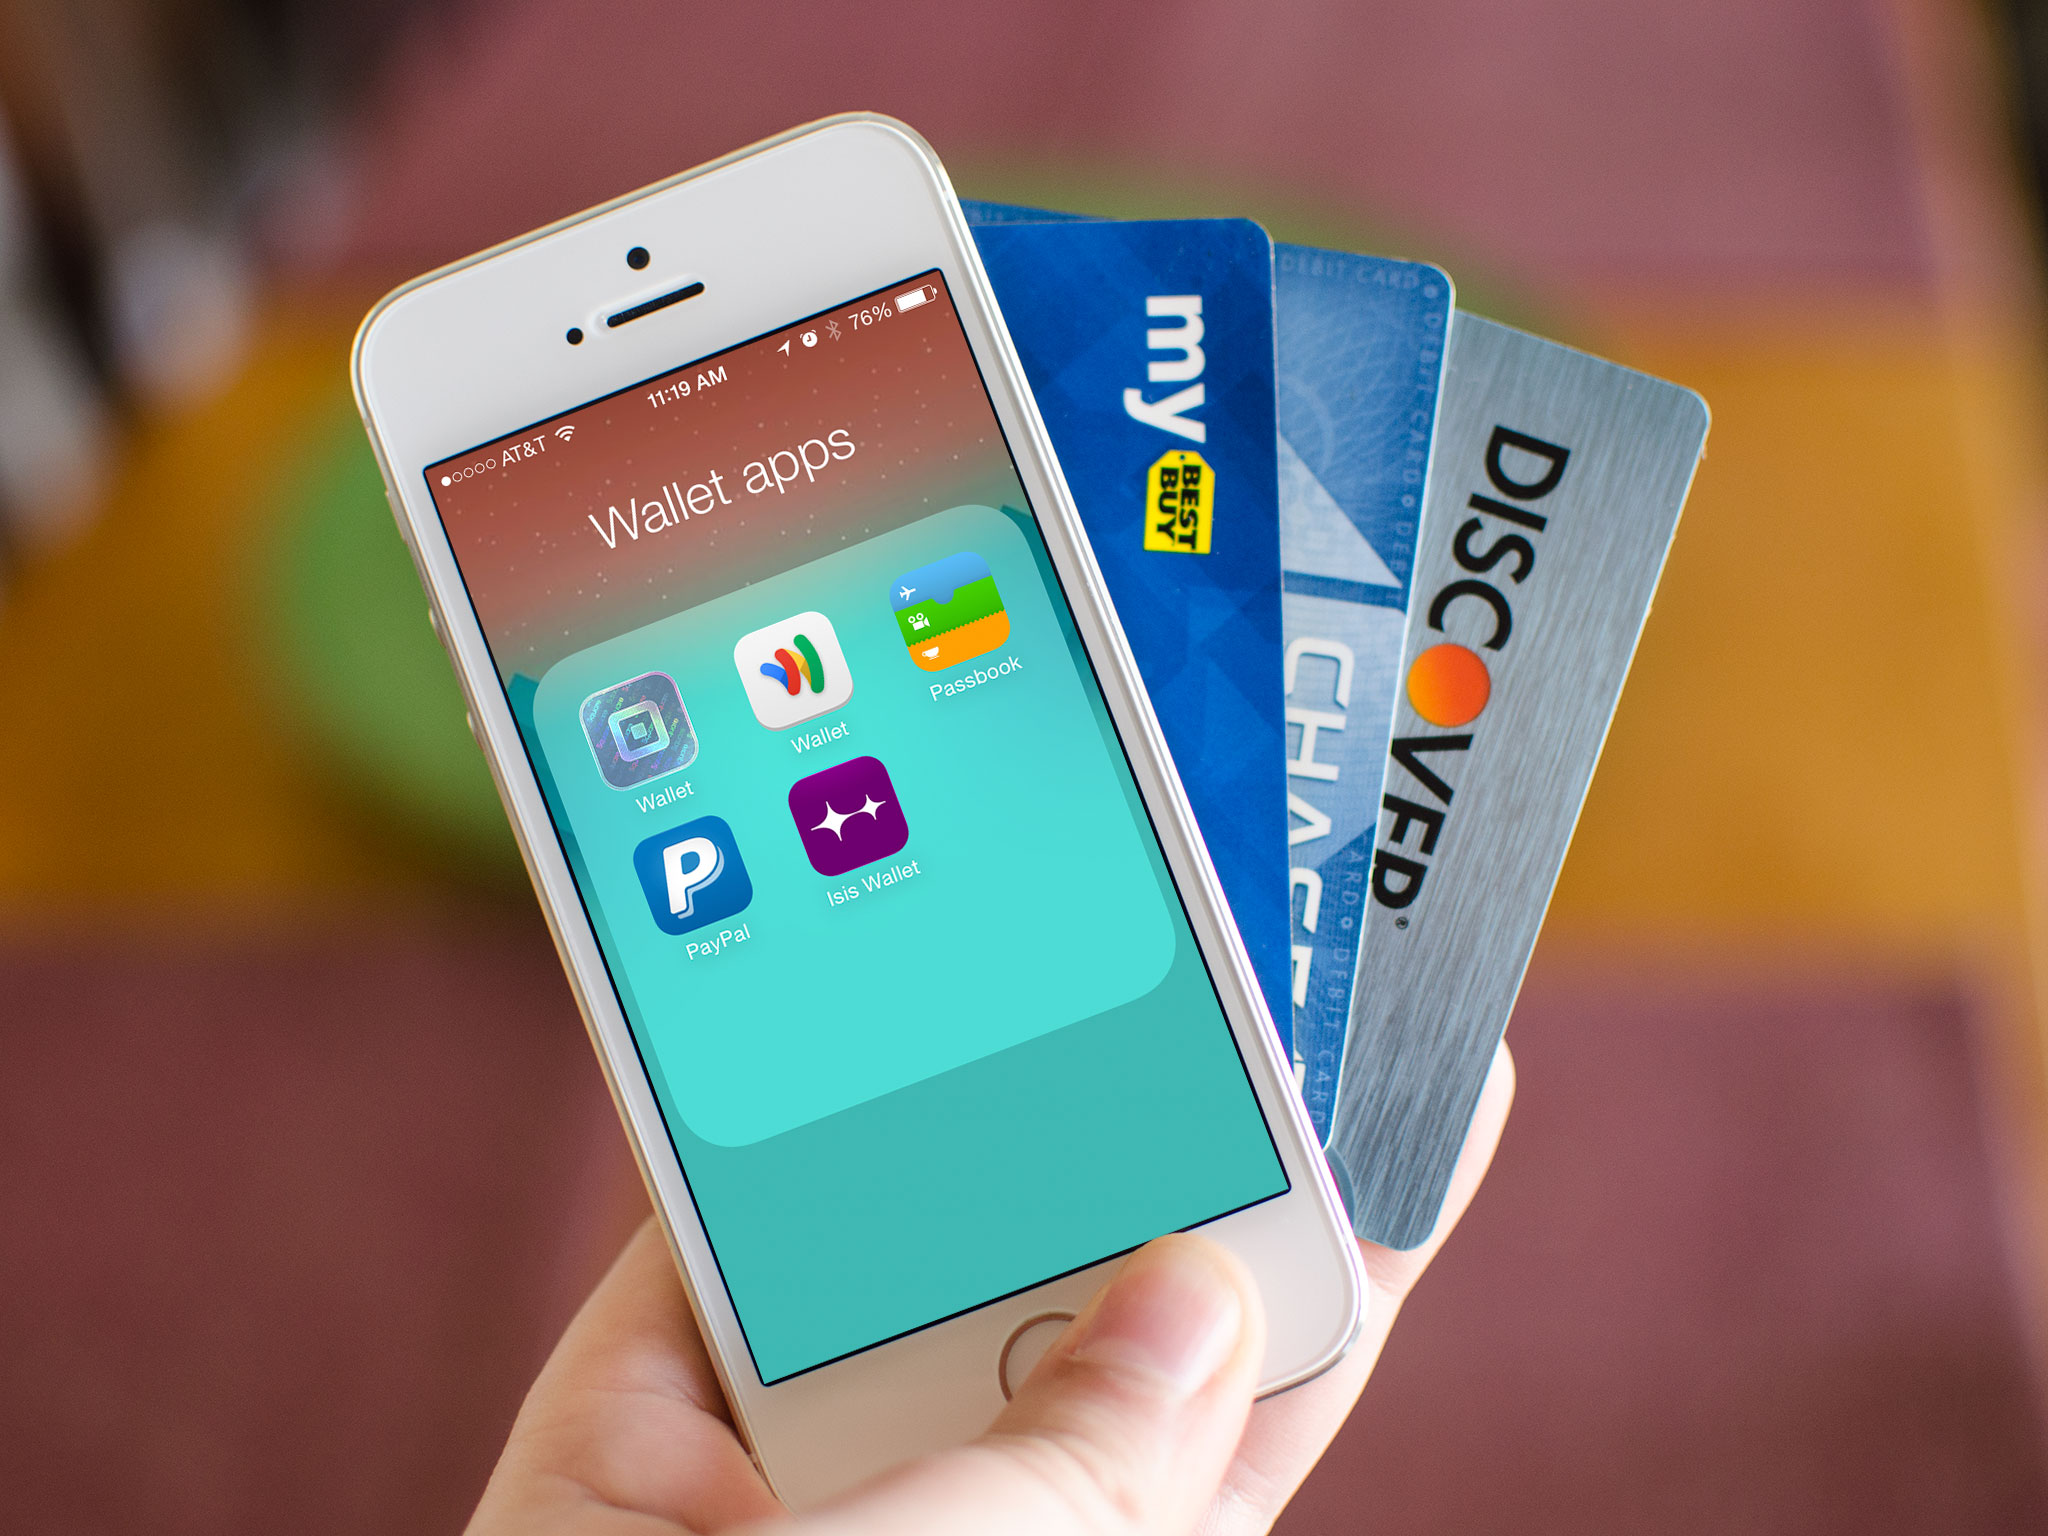 Best payment and wallet apps for iPhone: Square Wallet, PayPal, Passbook, and more!